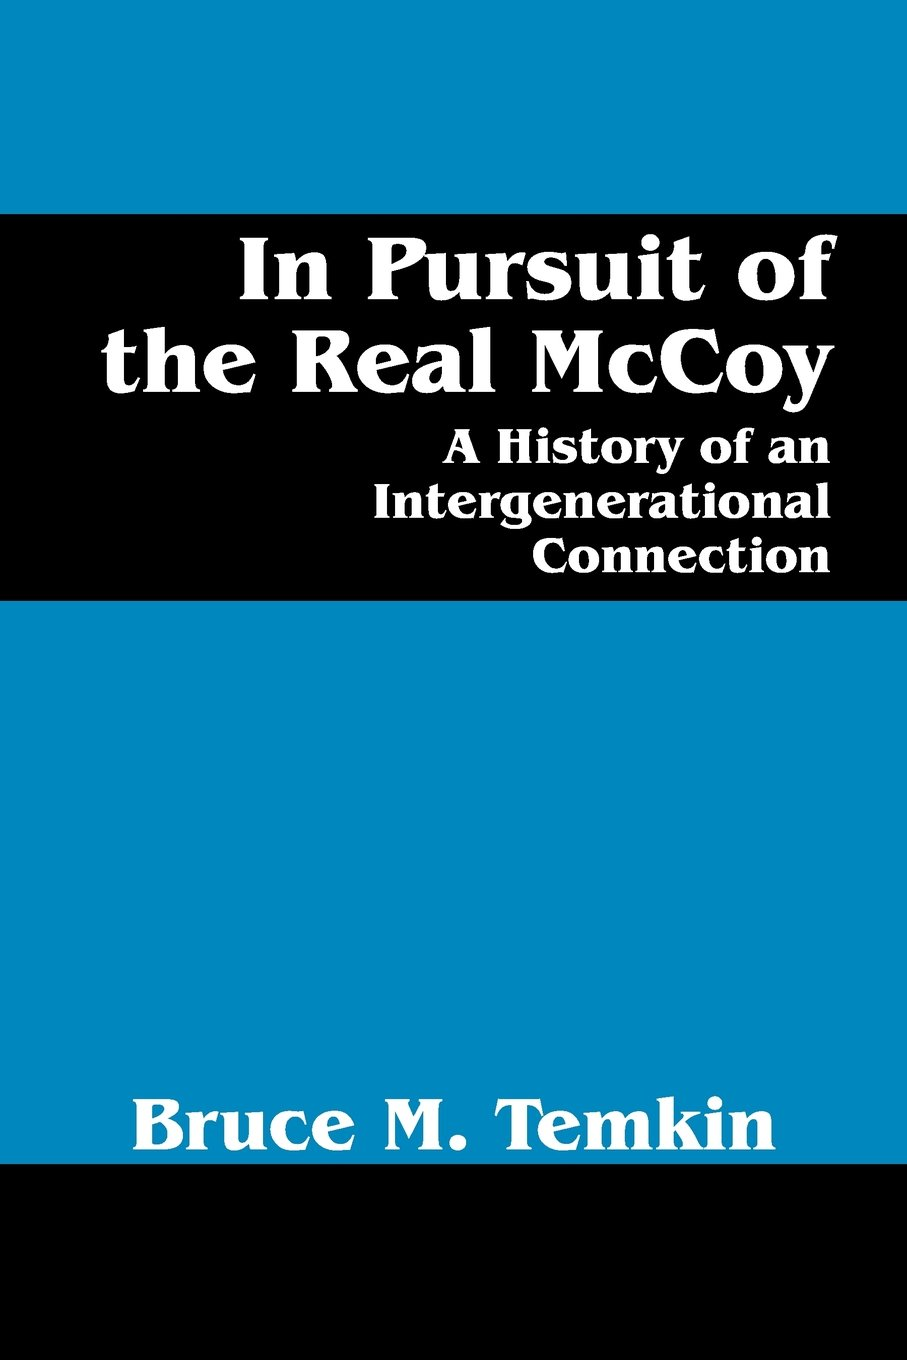 In Pursuit of the Real McCoy: A History of an Intergenerational Connection